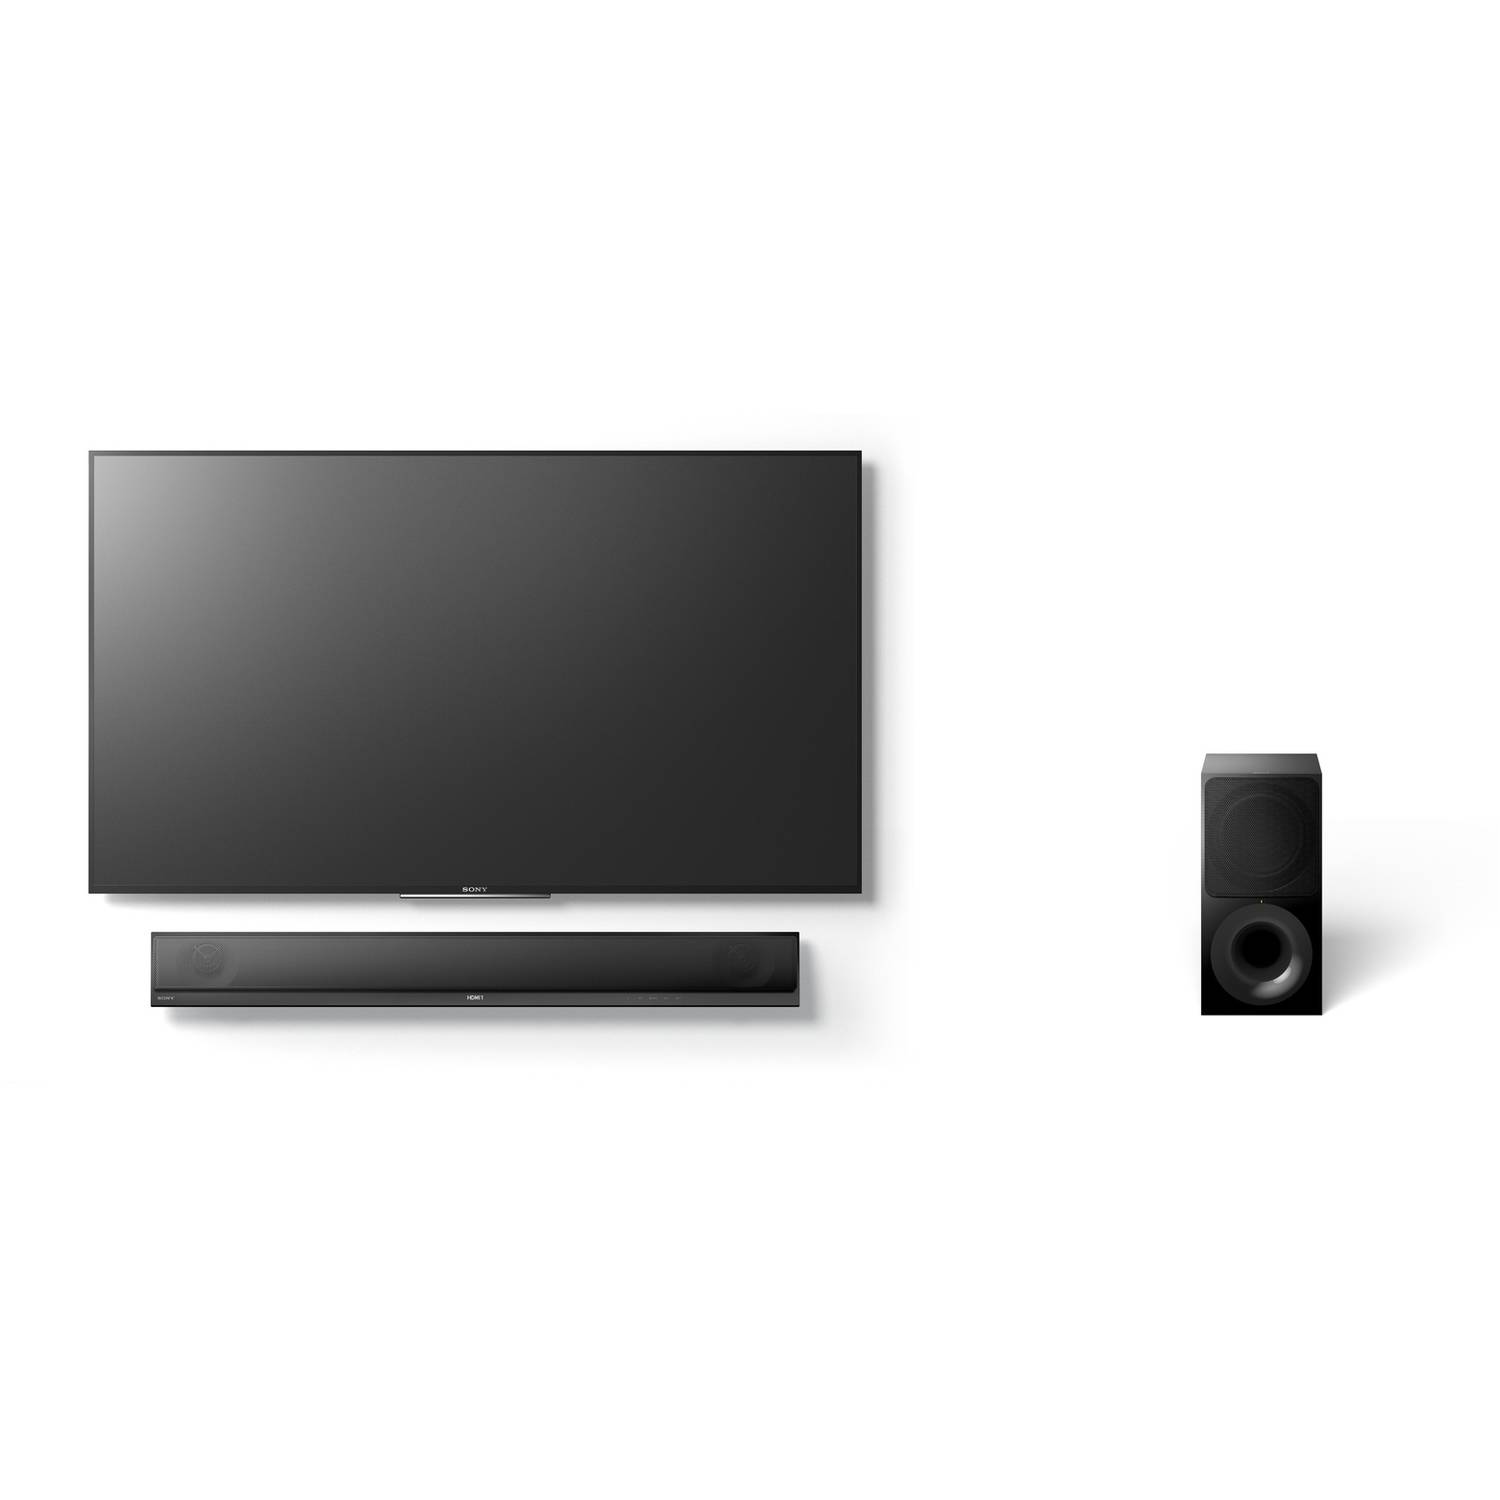 Sony HTCT790 2.1-Channel Sound Bar with 4K and HDR Support with Bluetooth by Sony